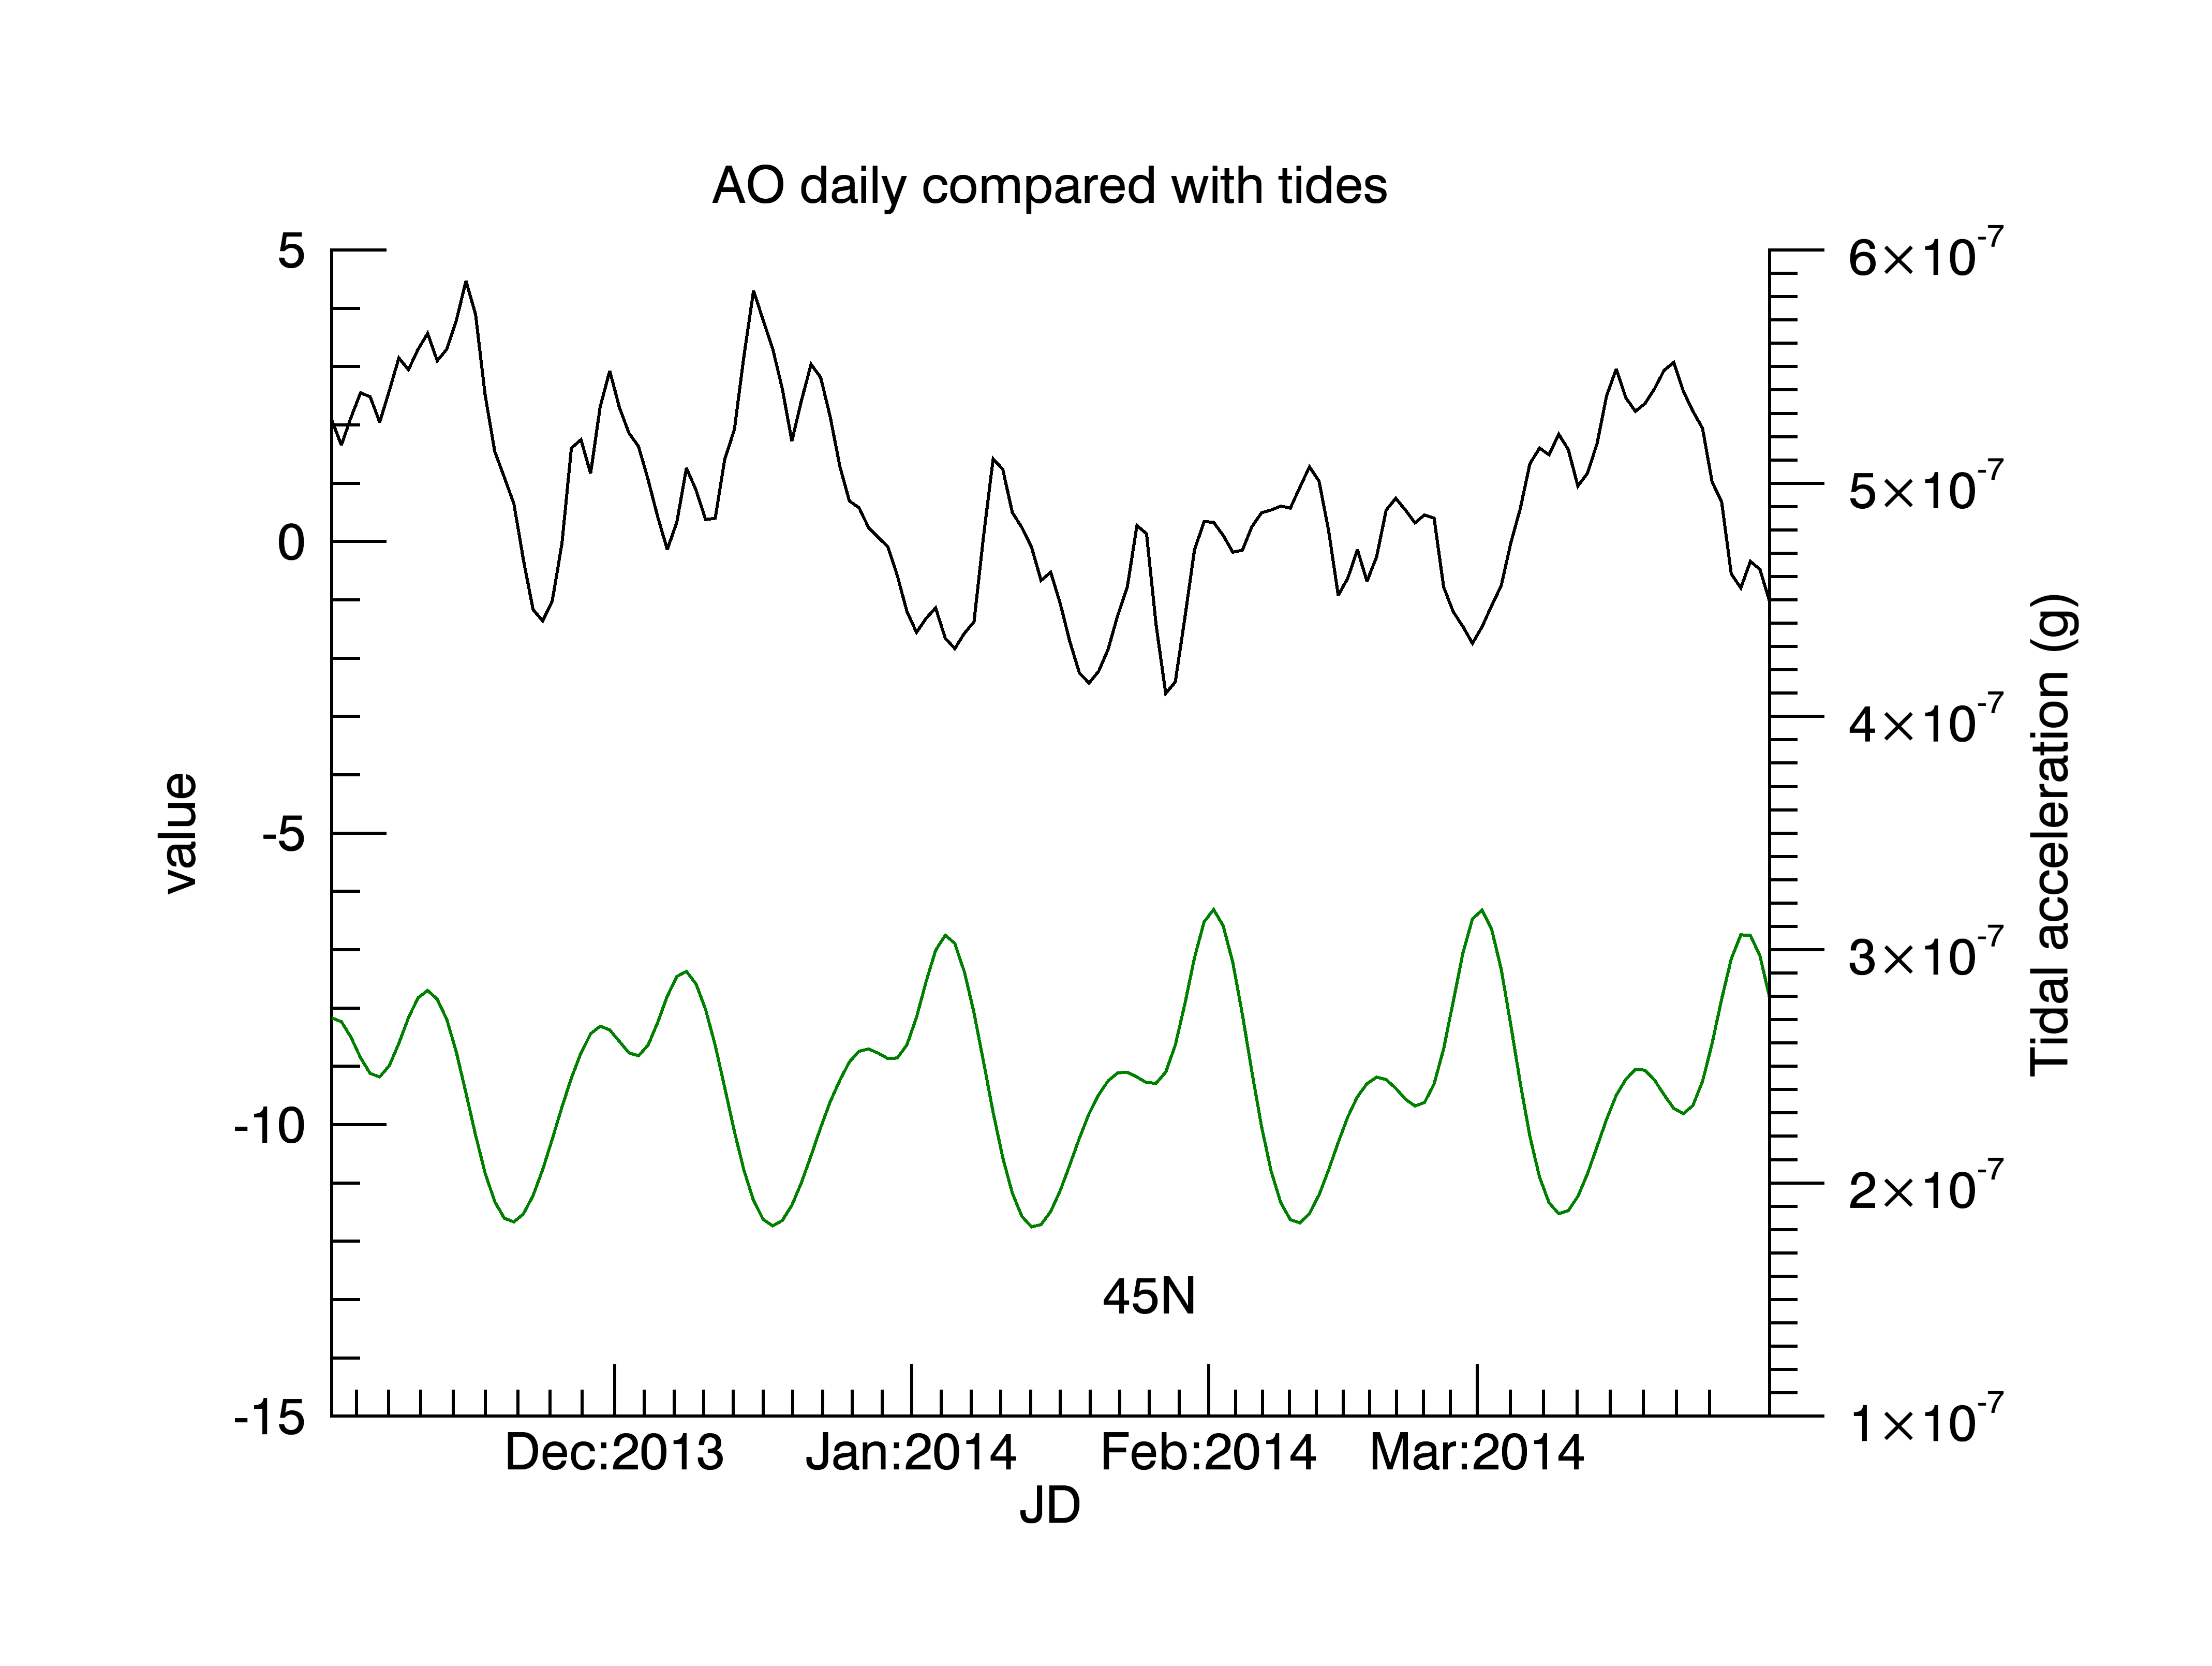 Winter 2013/14 AO compared to tidal tractional acceleration at 45°N